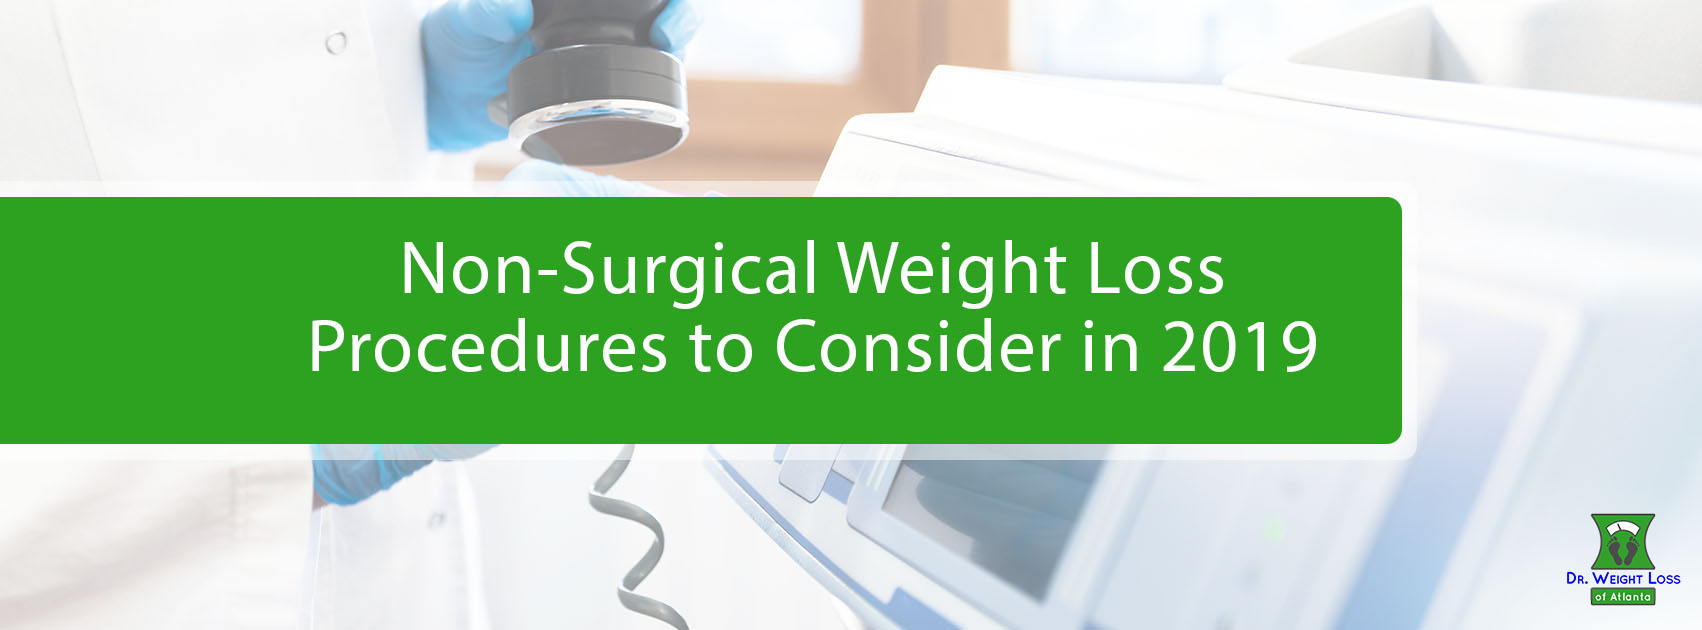 Doctor performing non-surgical weight loss procedure.